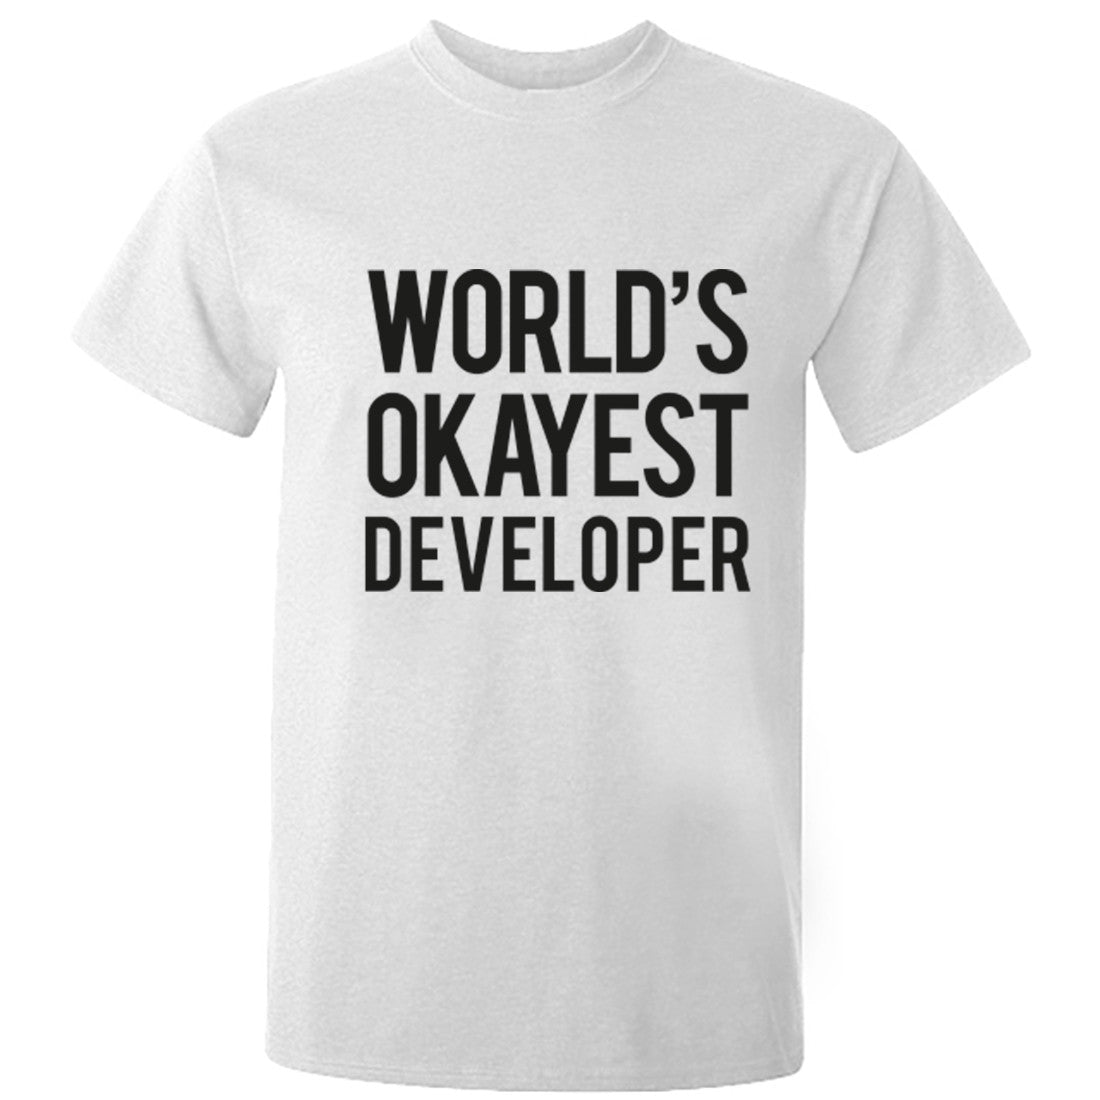 Worlds Okayest Developer Unisex Fit T-Shirt K0488 - Illustrated Identity Ltd.